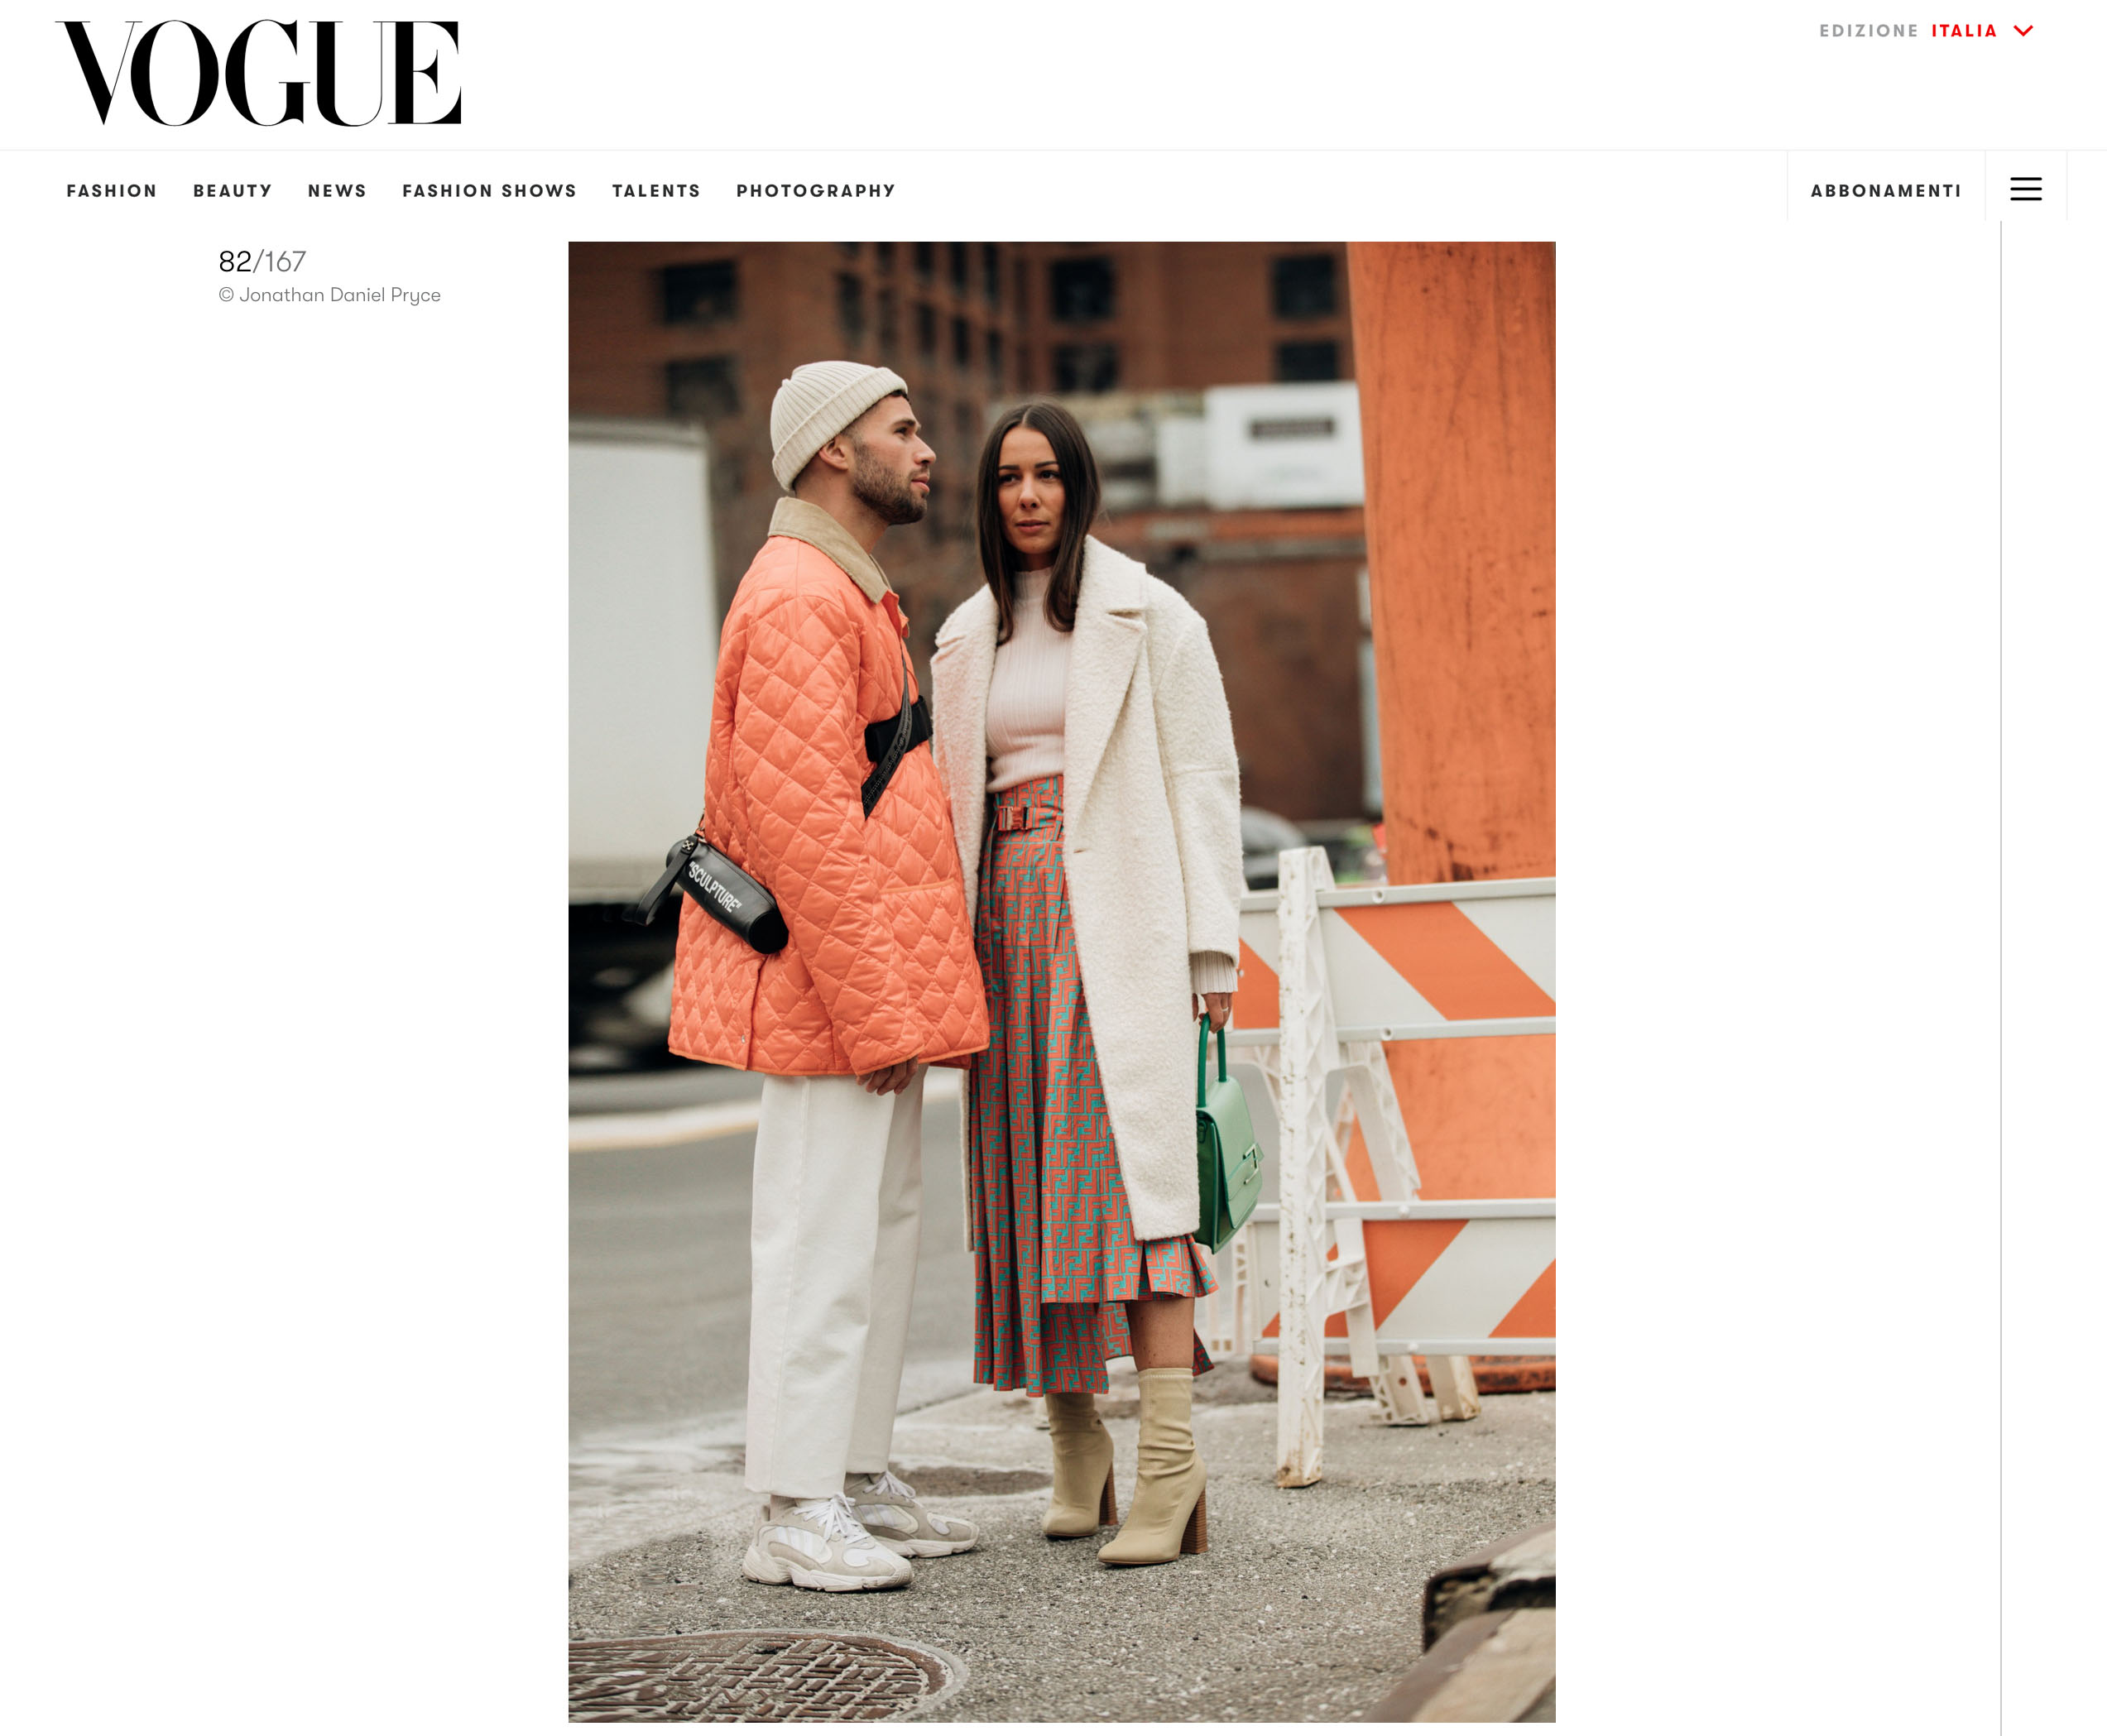 vogue italia street style fashion couple